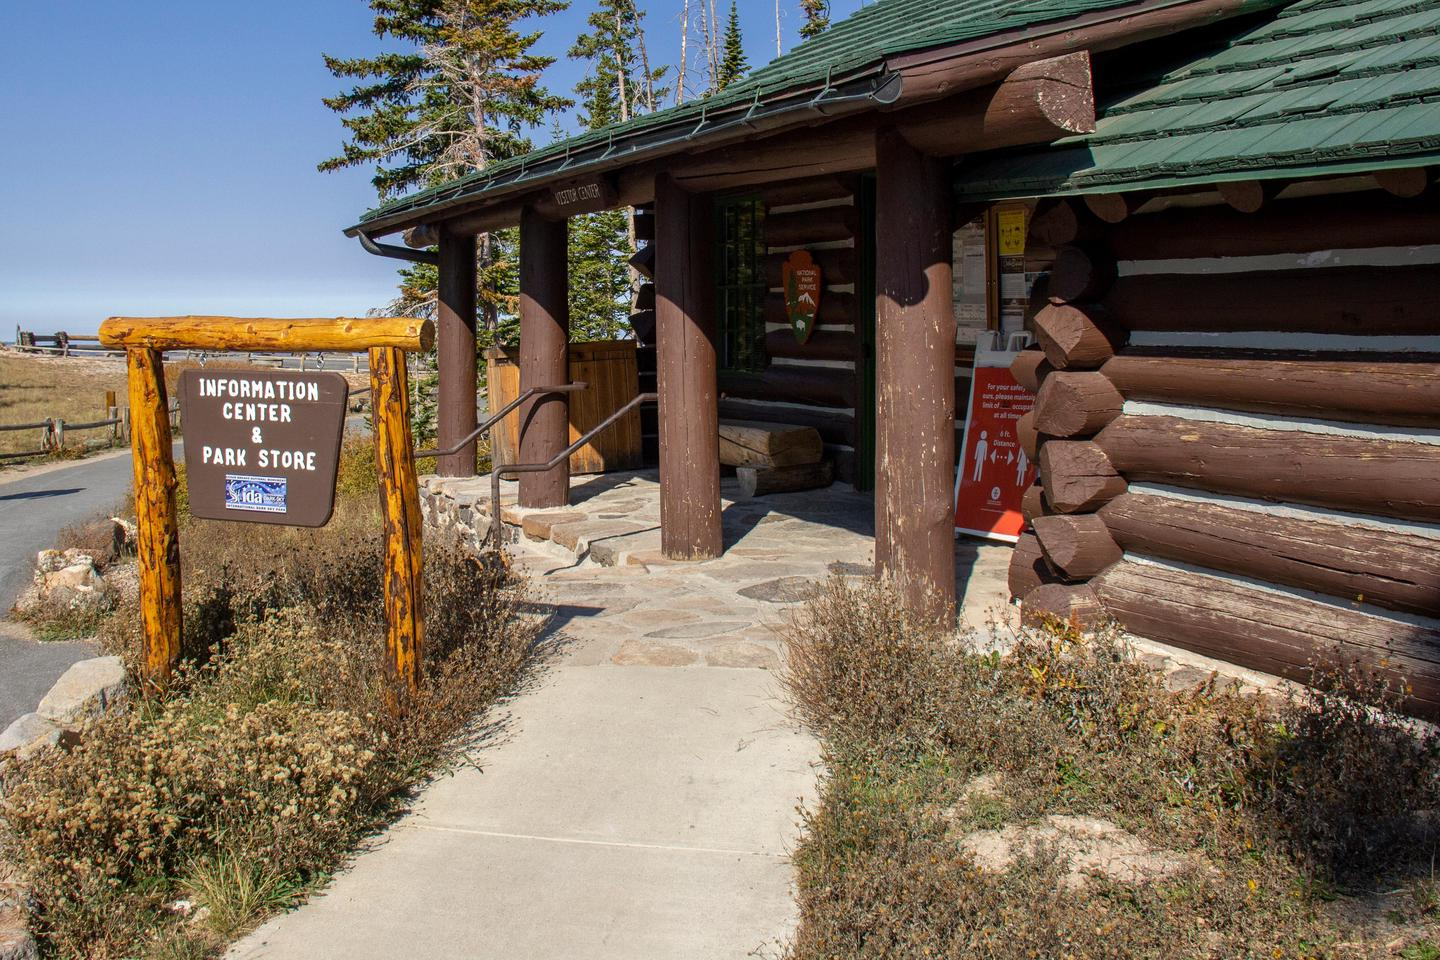 Information Center 4The 1937 log cabin serves as an information center and park store for Cedar Breaks National Monument.